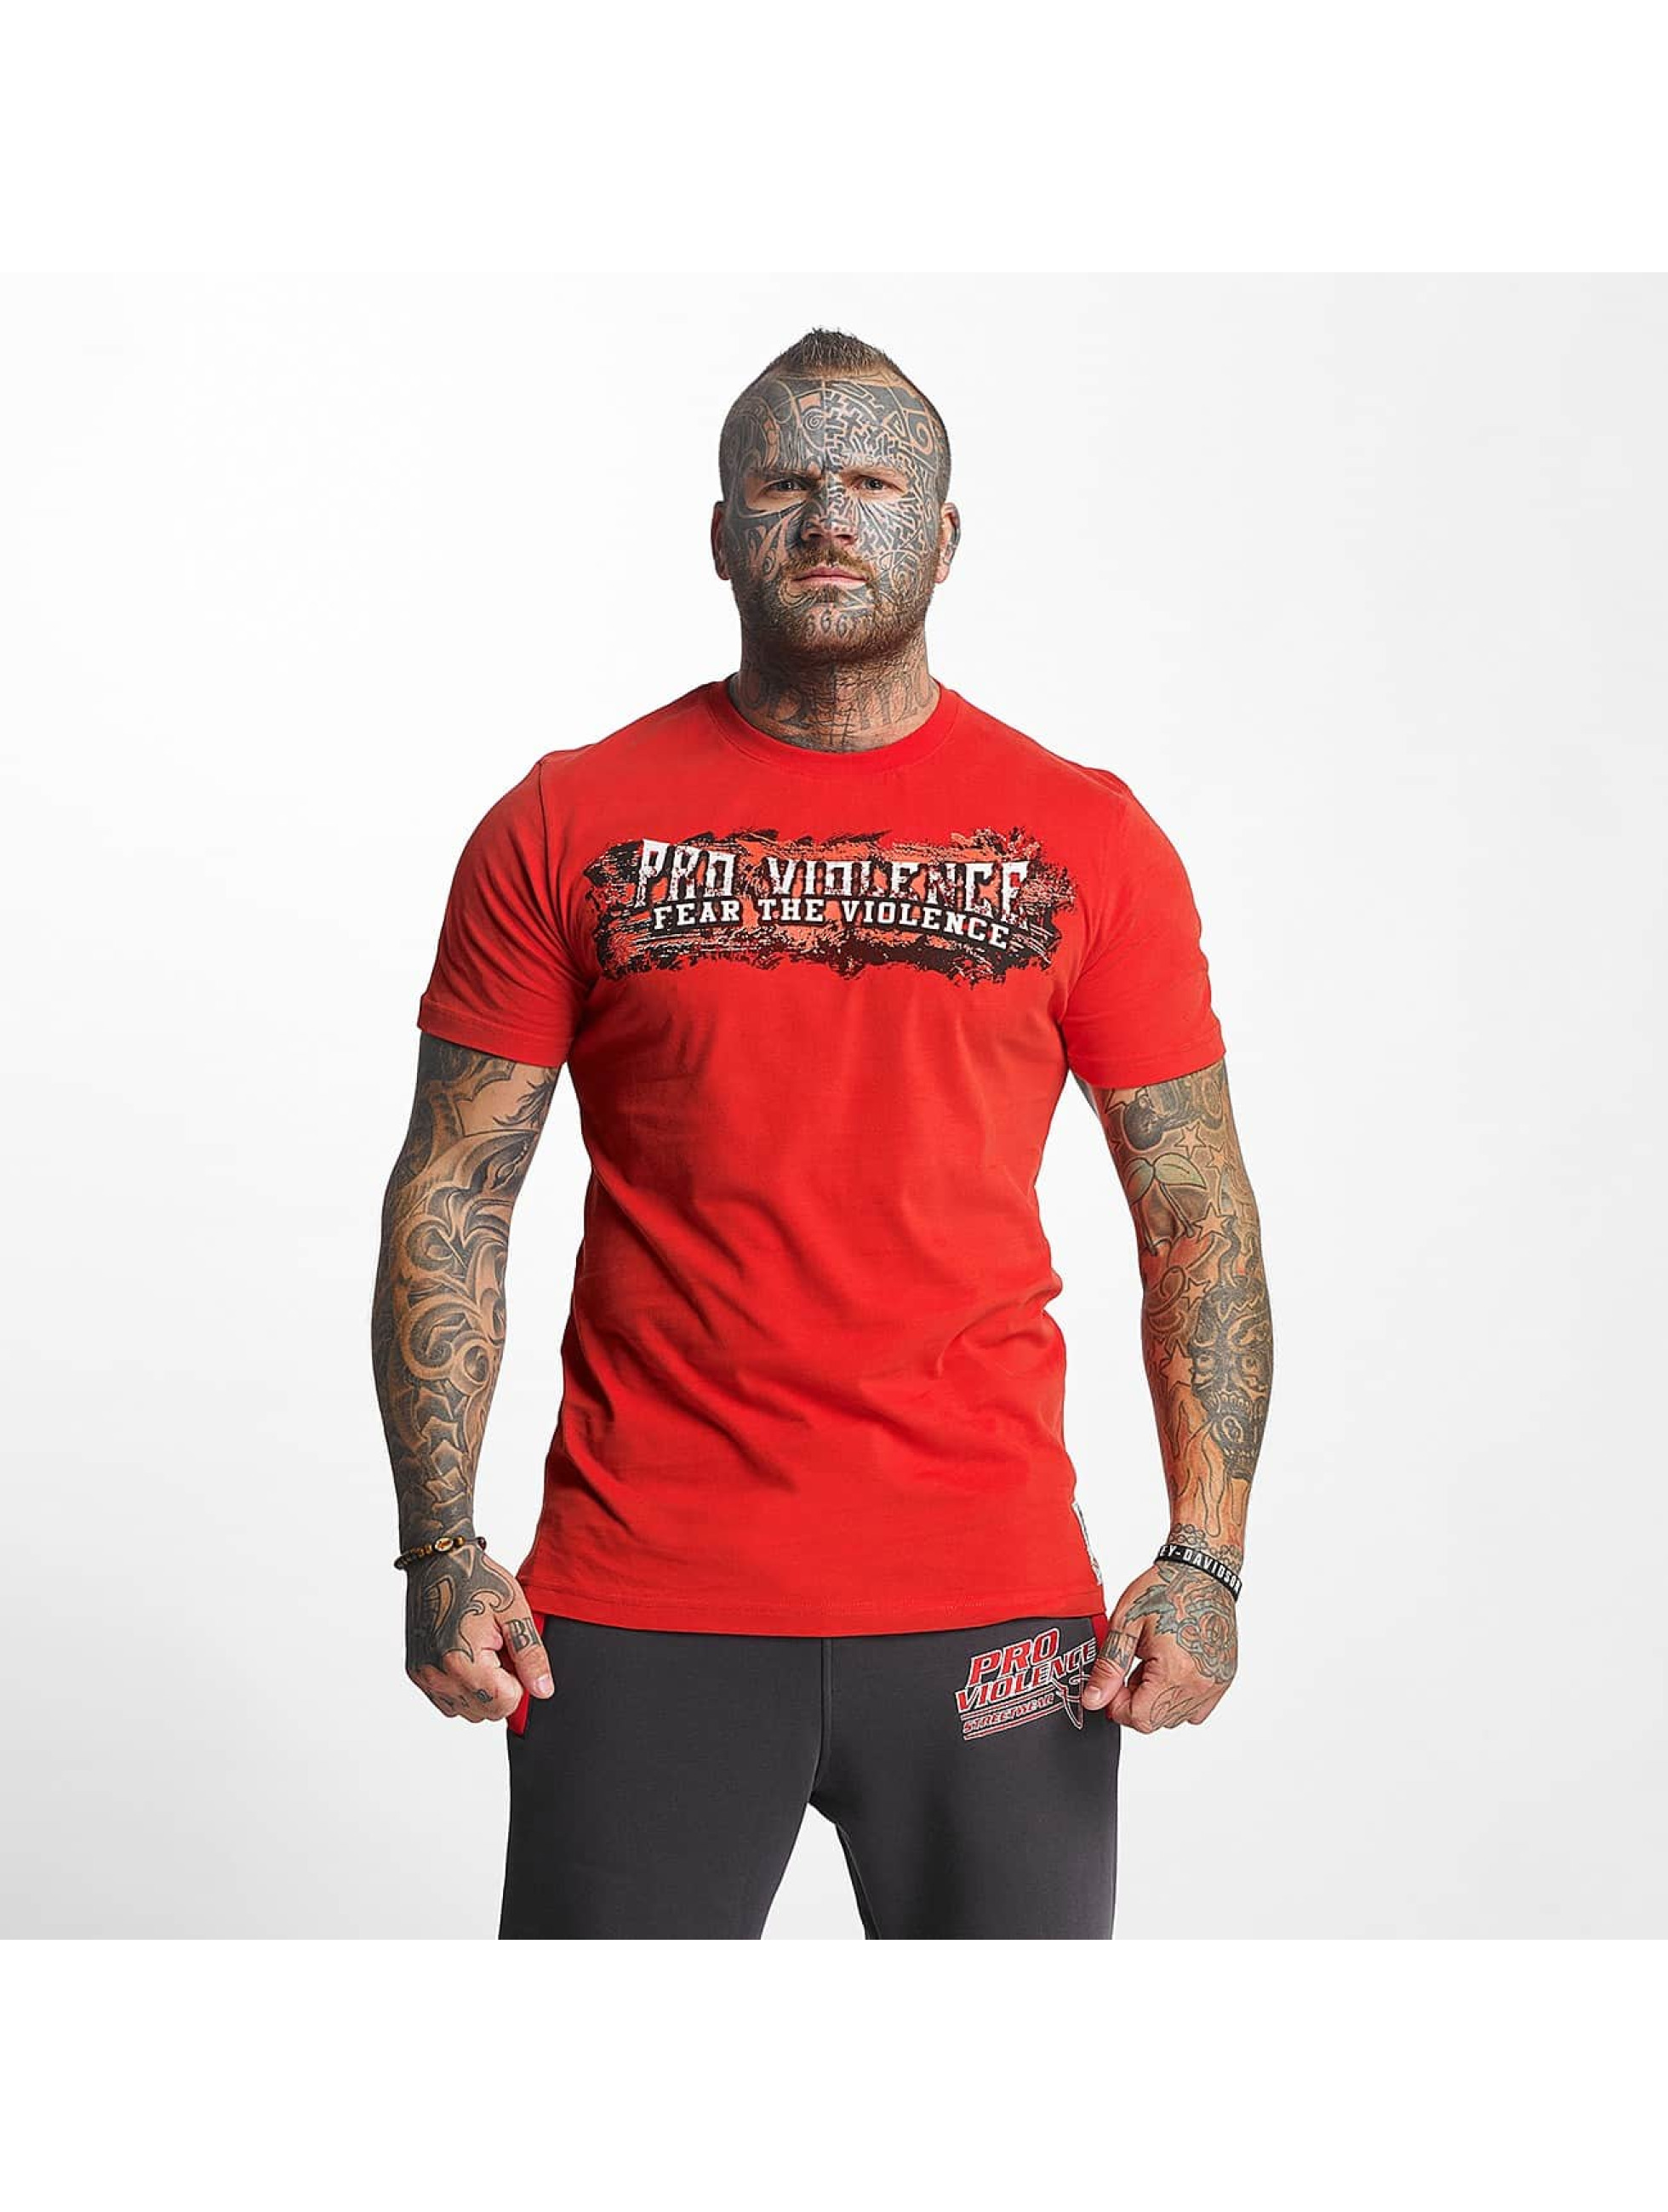 Pro Violence Streetwear T-Shirt The Violence Fear rouge